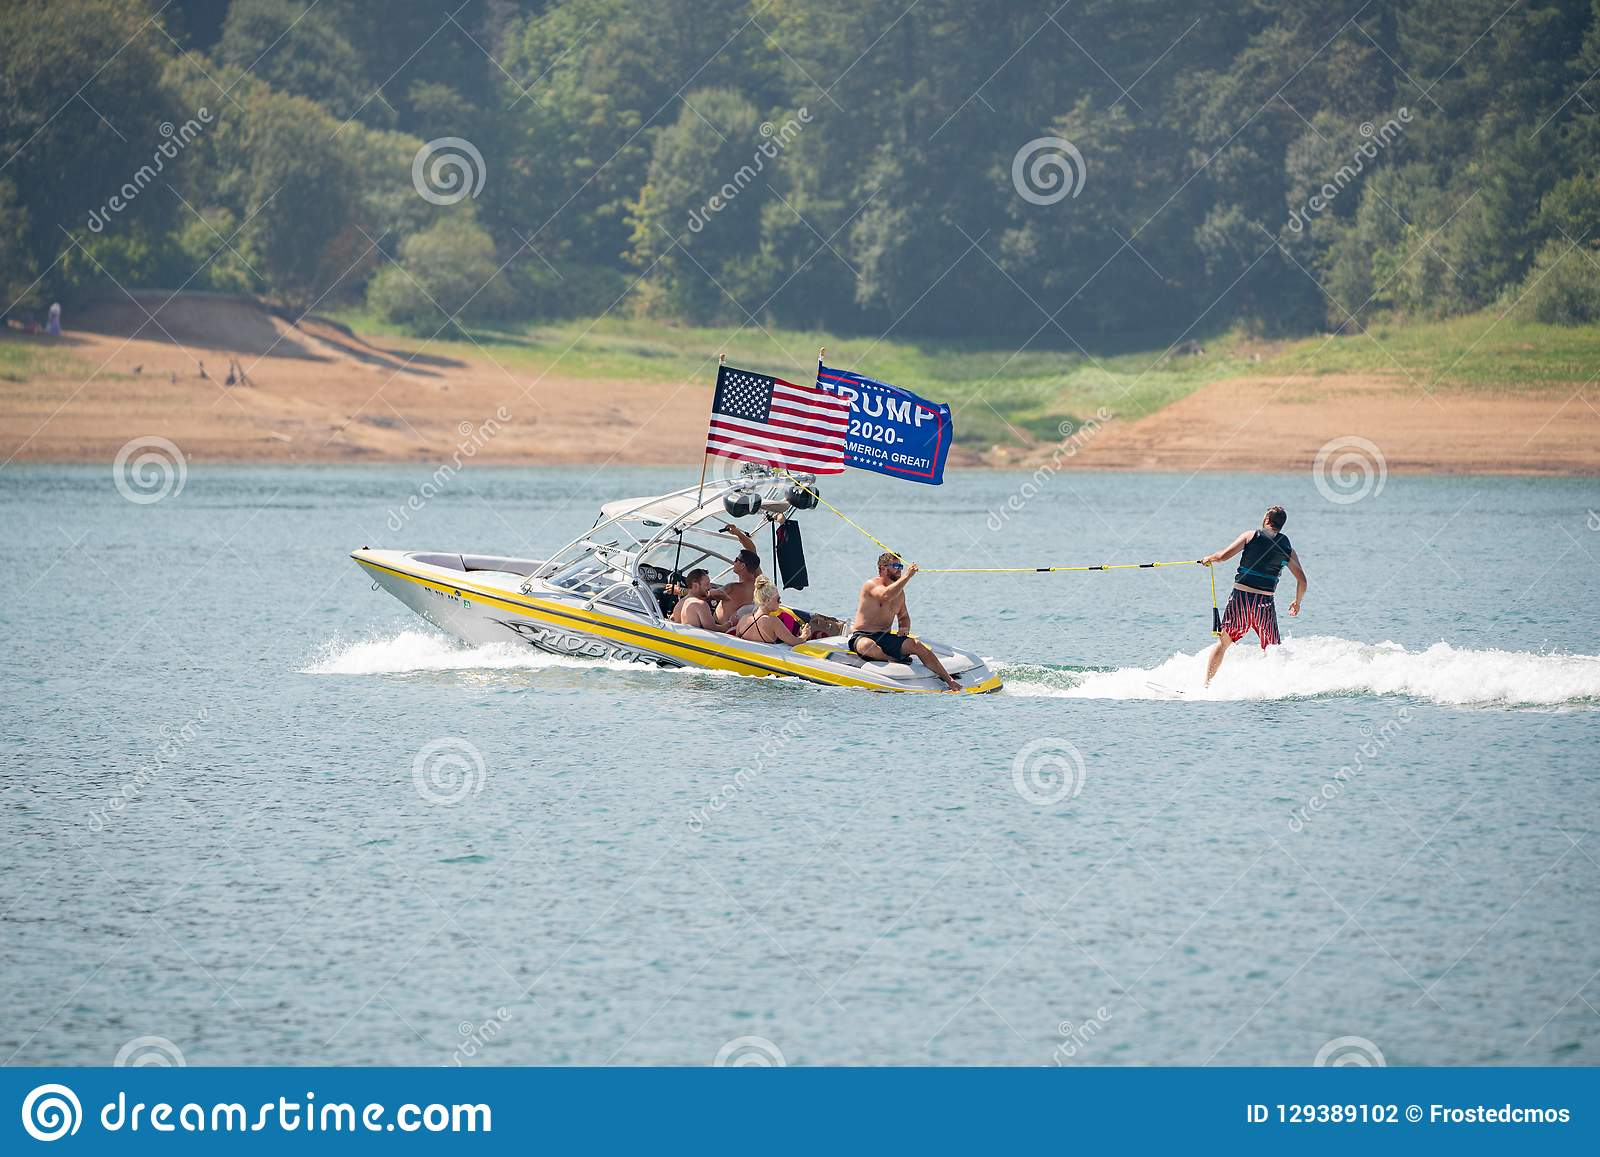 Motor boat with american and pro-trump flags on the lake